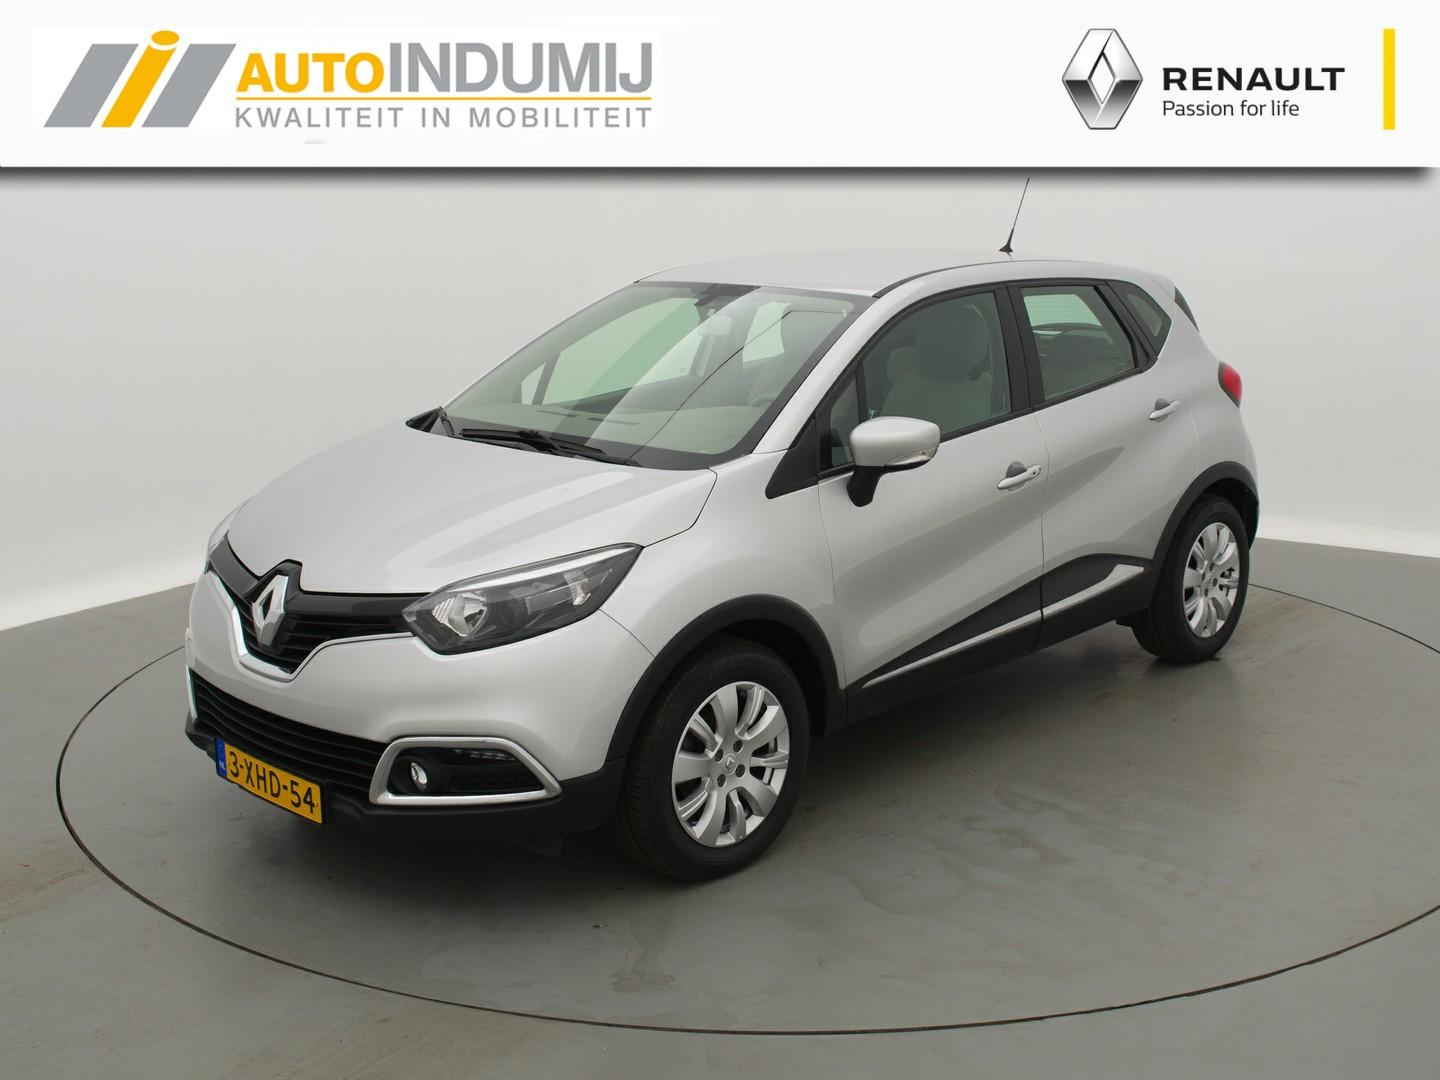 Renault Captur Tce 90 expression / airco / cruise control / trekhaak!